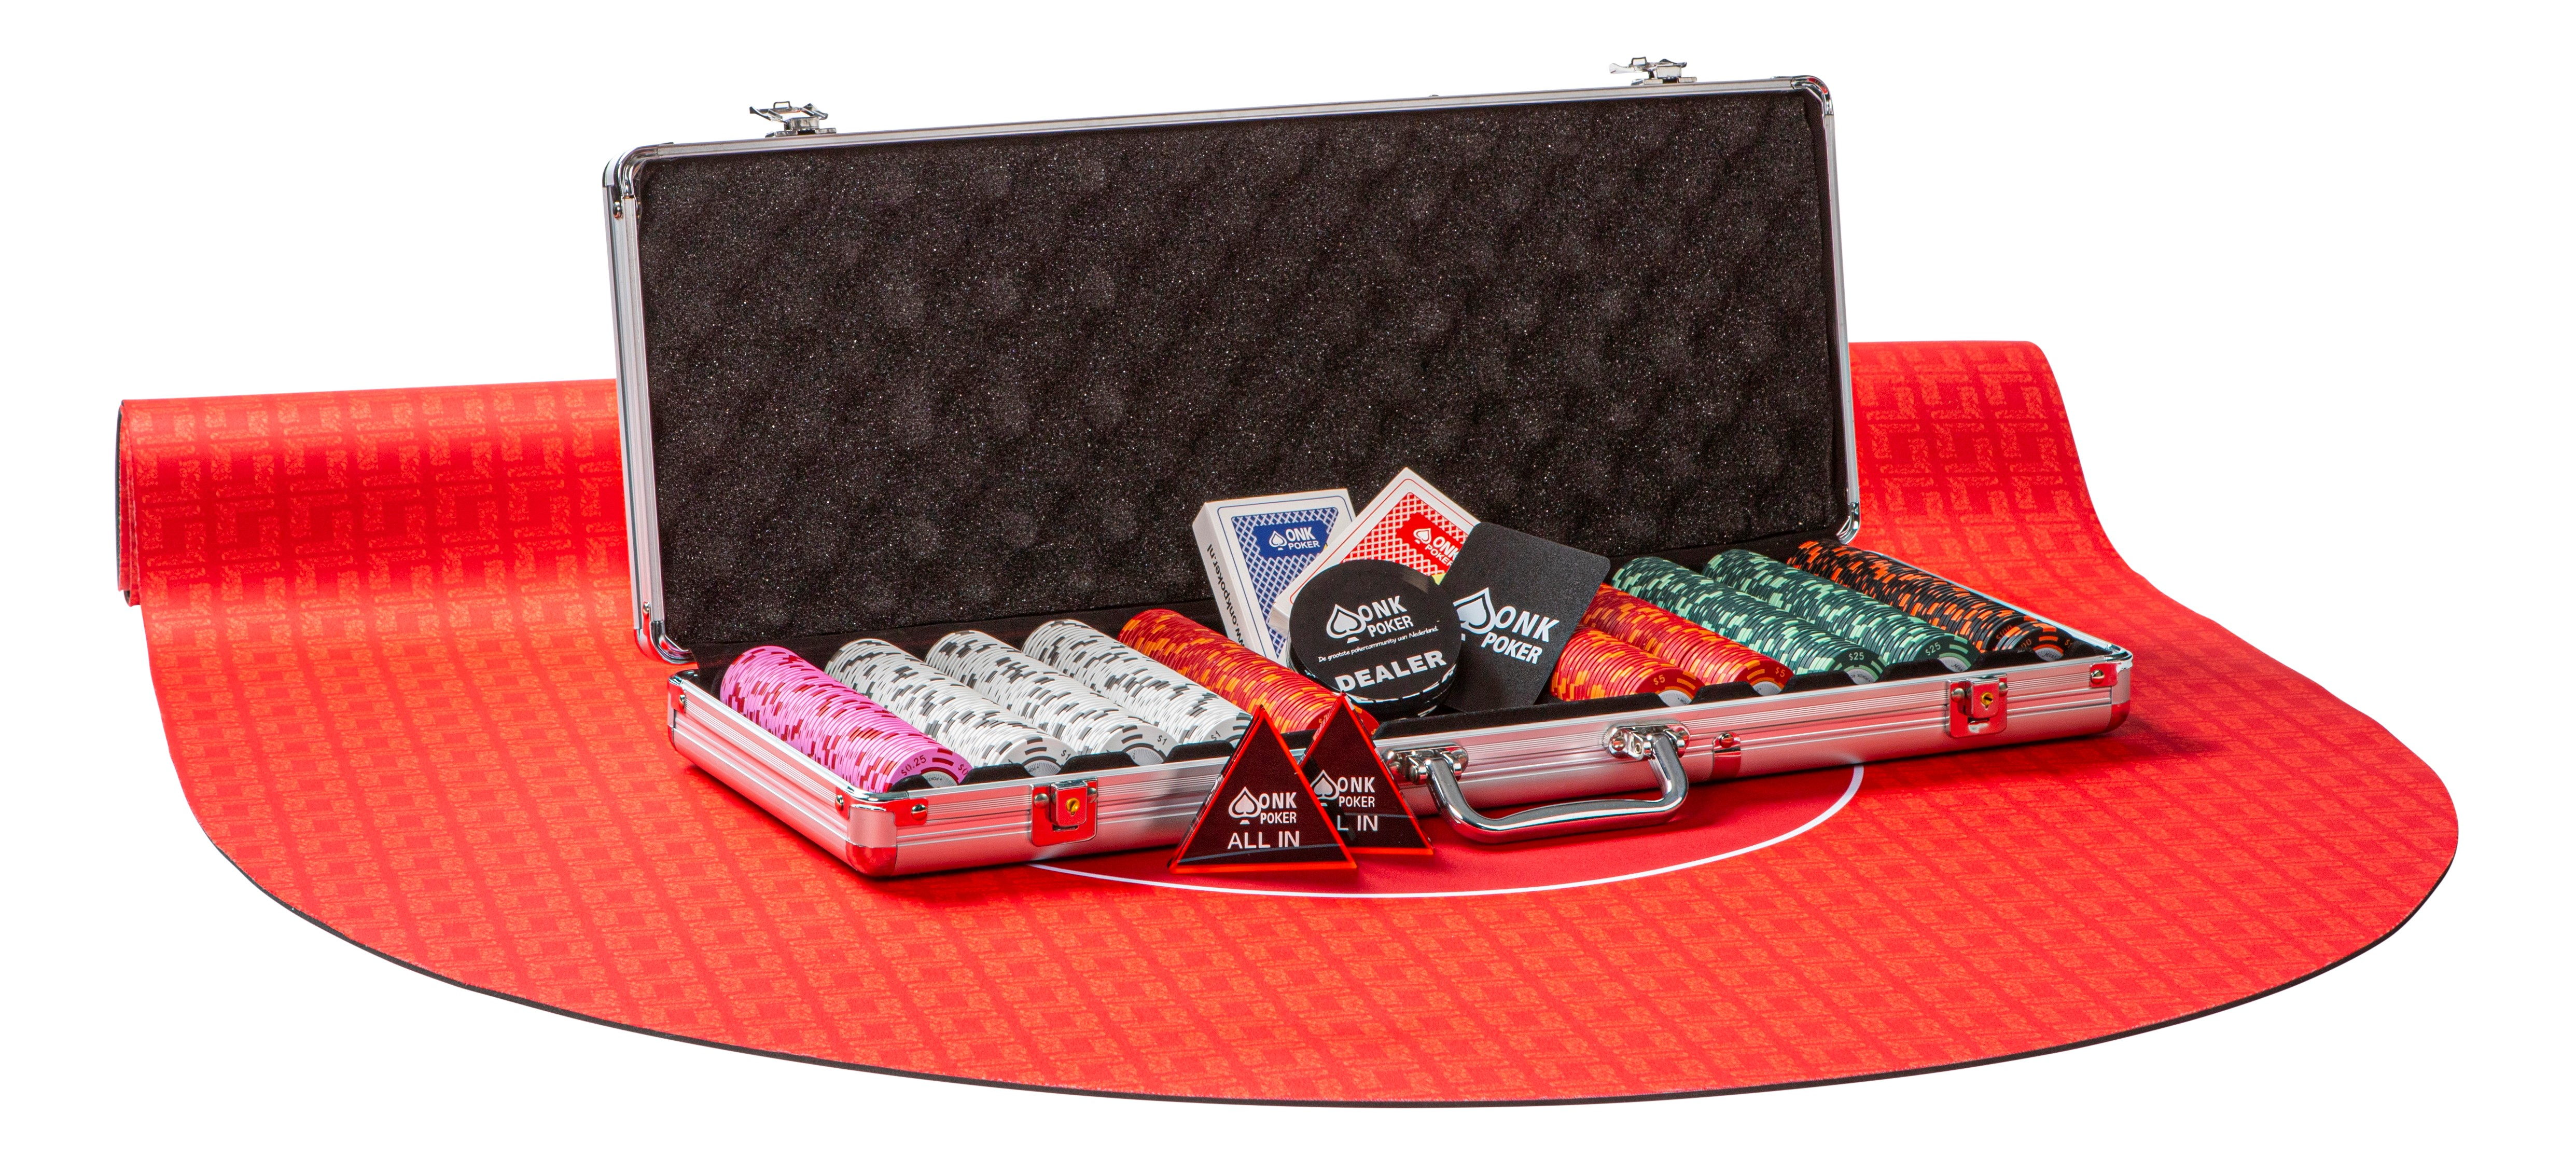 monte carlo cashgame set weekend